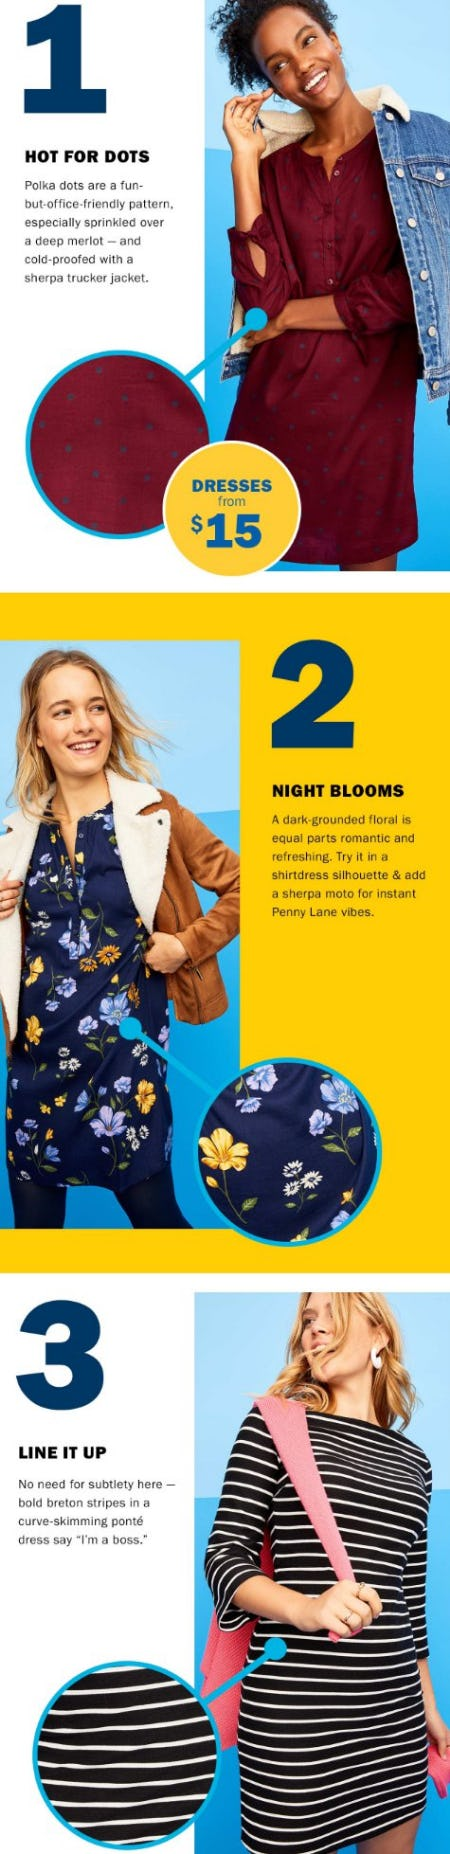 Slip Into Something New from Old Navy